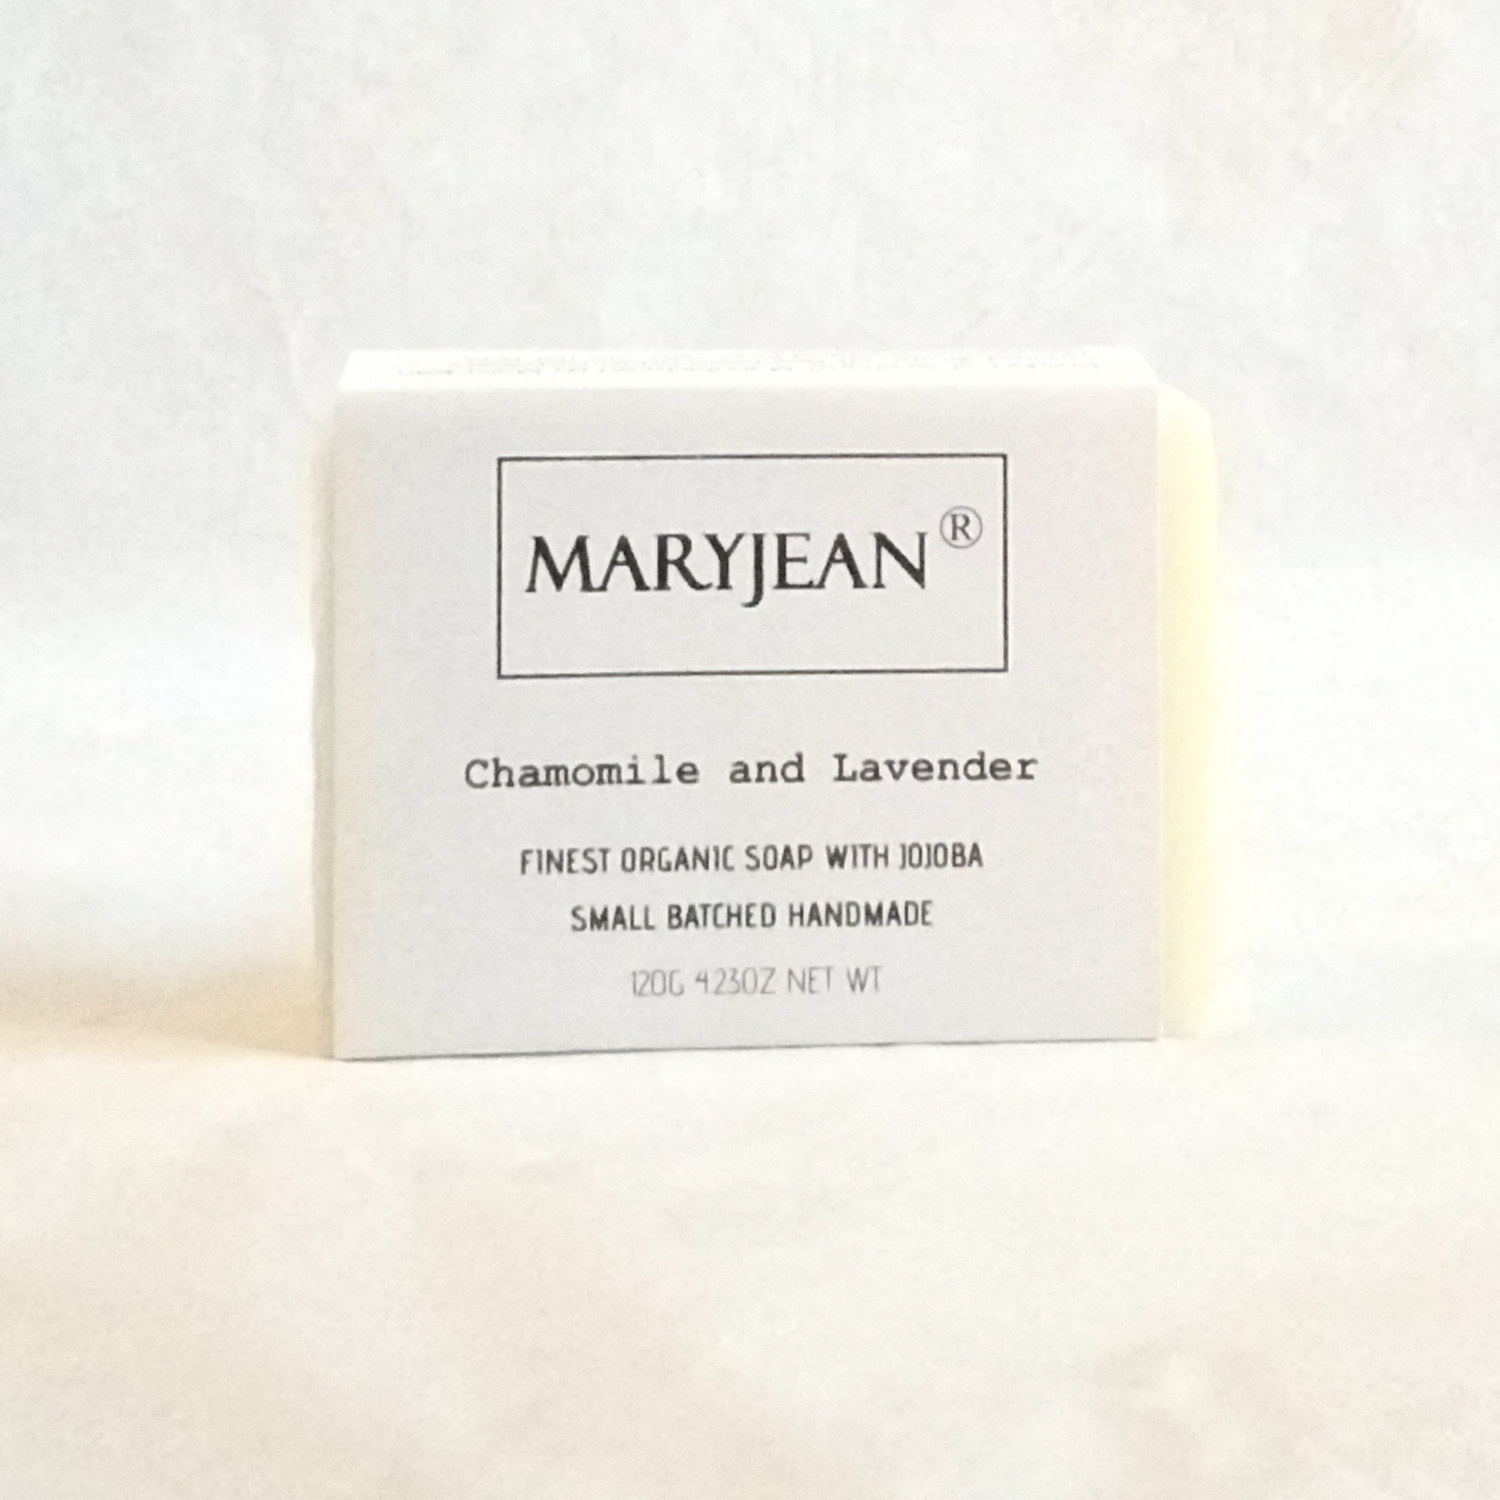 Organic Scottish Chamomile Lavender Facial Cleansing Soap Handmade With Jojoba An excellent choice for treating sun burnt skin this summer this bar of soap is sensitive enough for every day use with Jojoba for healthier skin